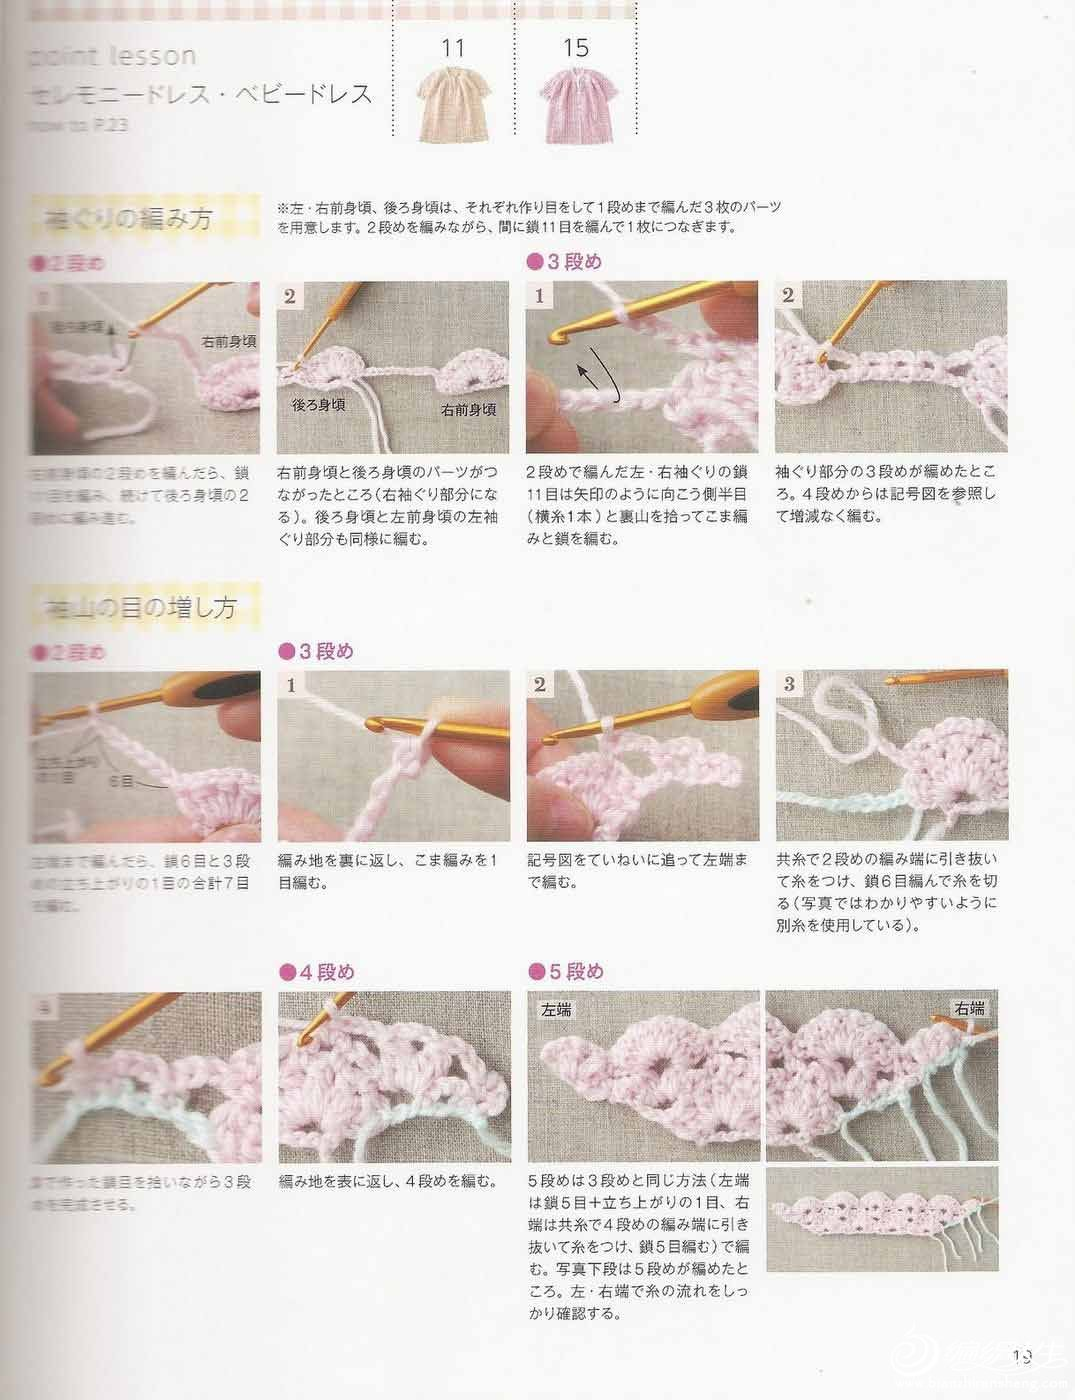 Happy crochet time for my baby_页面_21.jpg